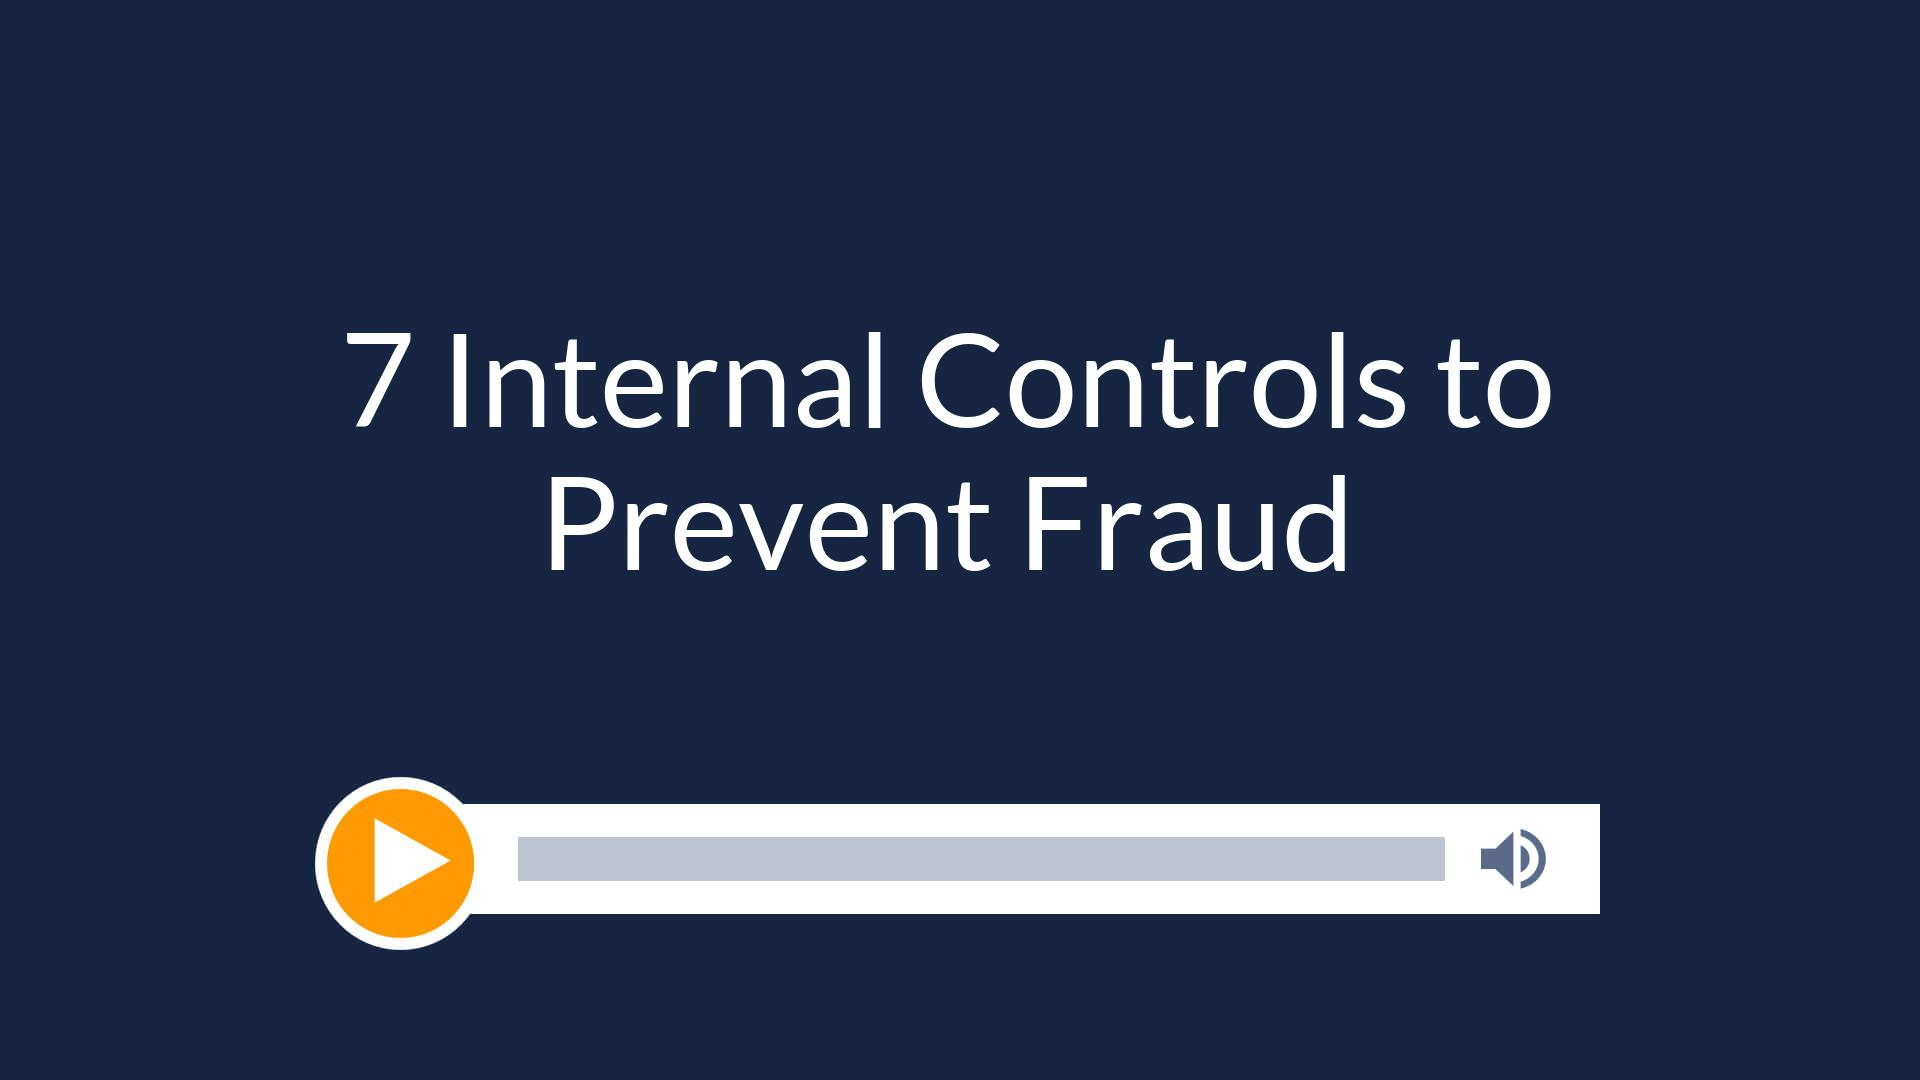 Top 7 Internal Controls to Prevent Fraud